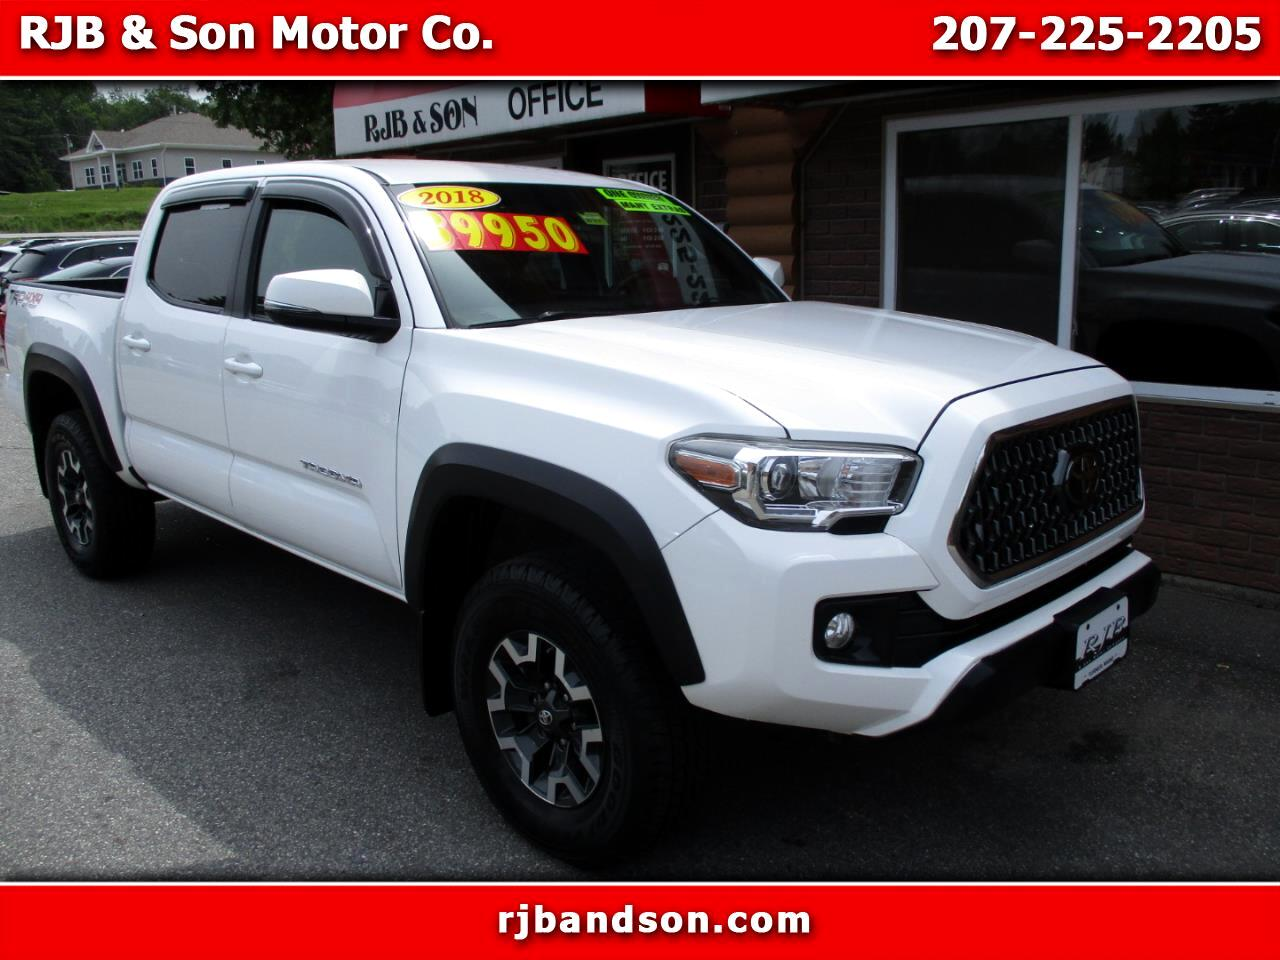 Toyota Tacoma TRD Offroad Dbl Cab 4WD V6 at 2018